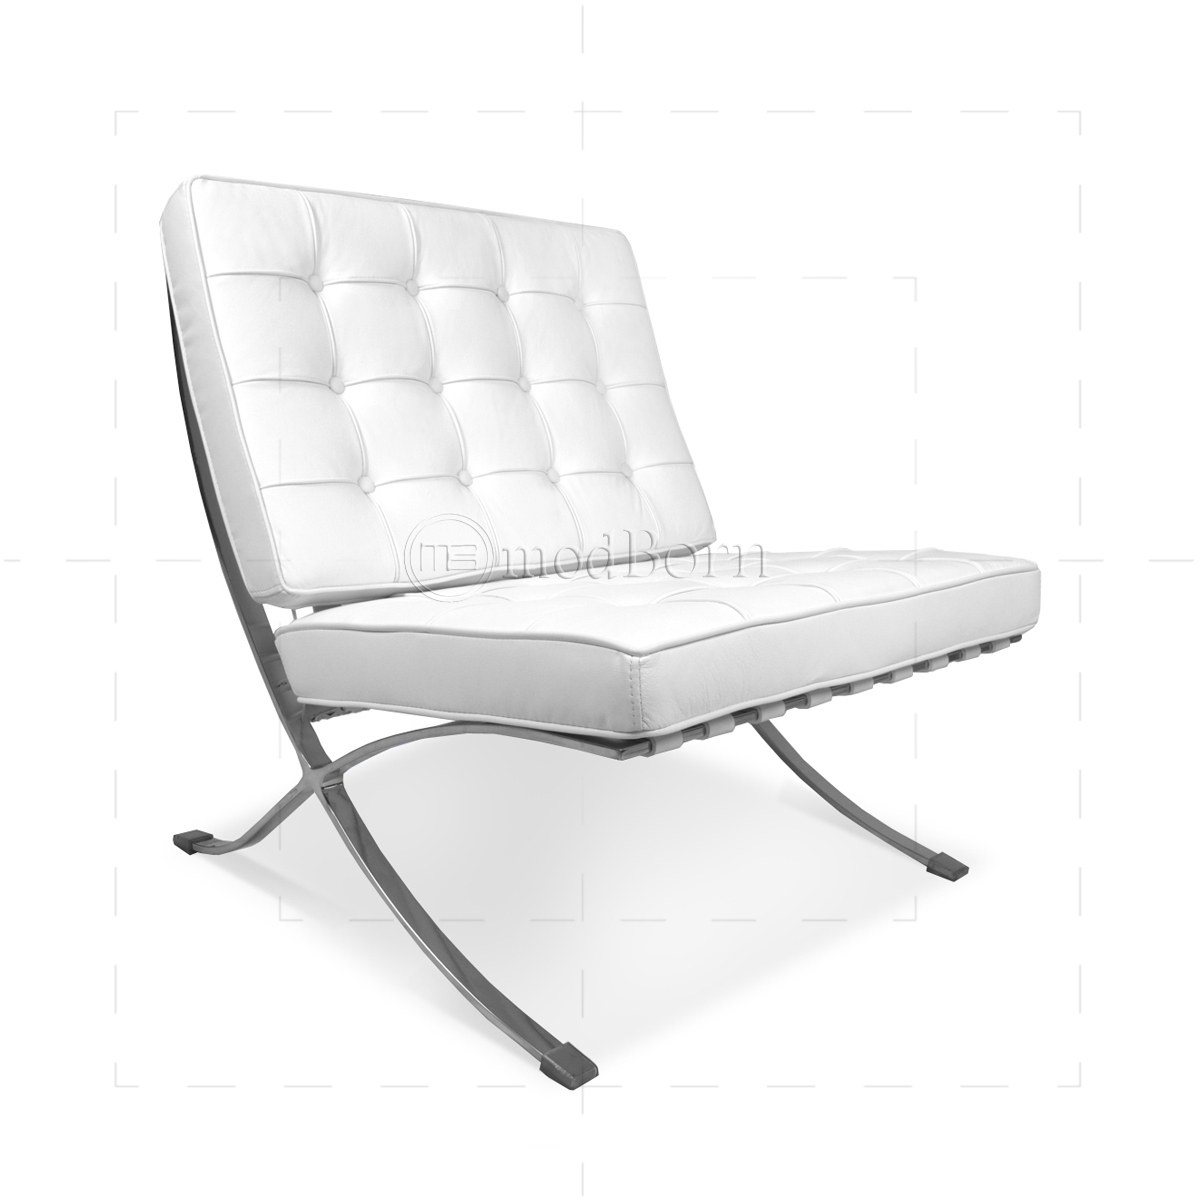 Ludwig mies van der rohe barcelona style chair white for Barcelona chaise replica